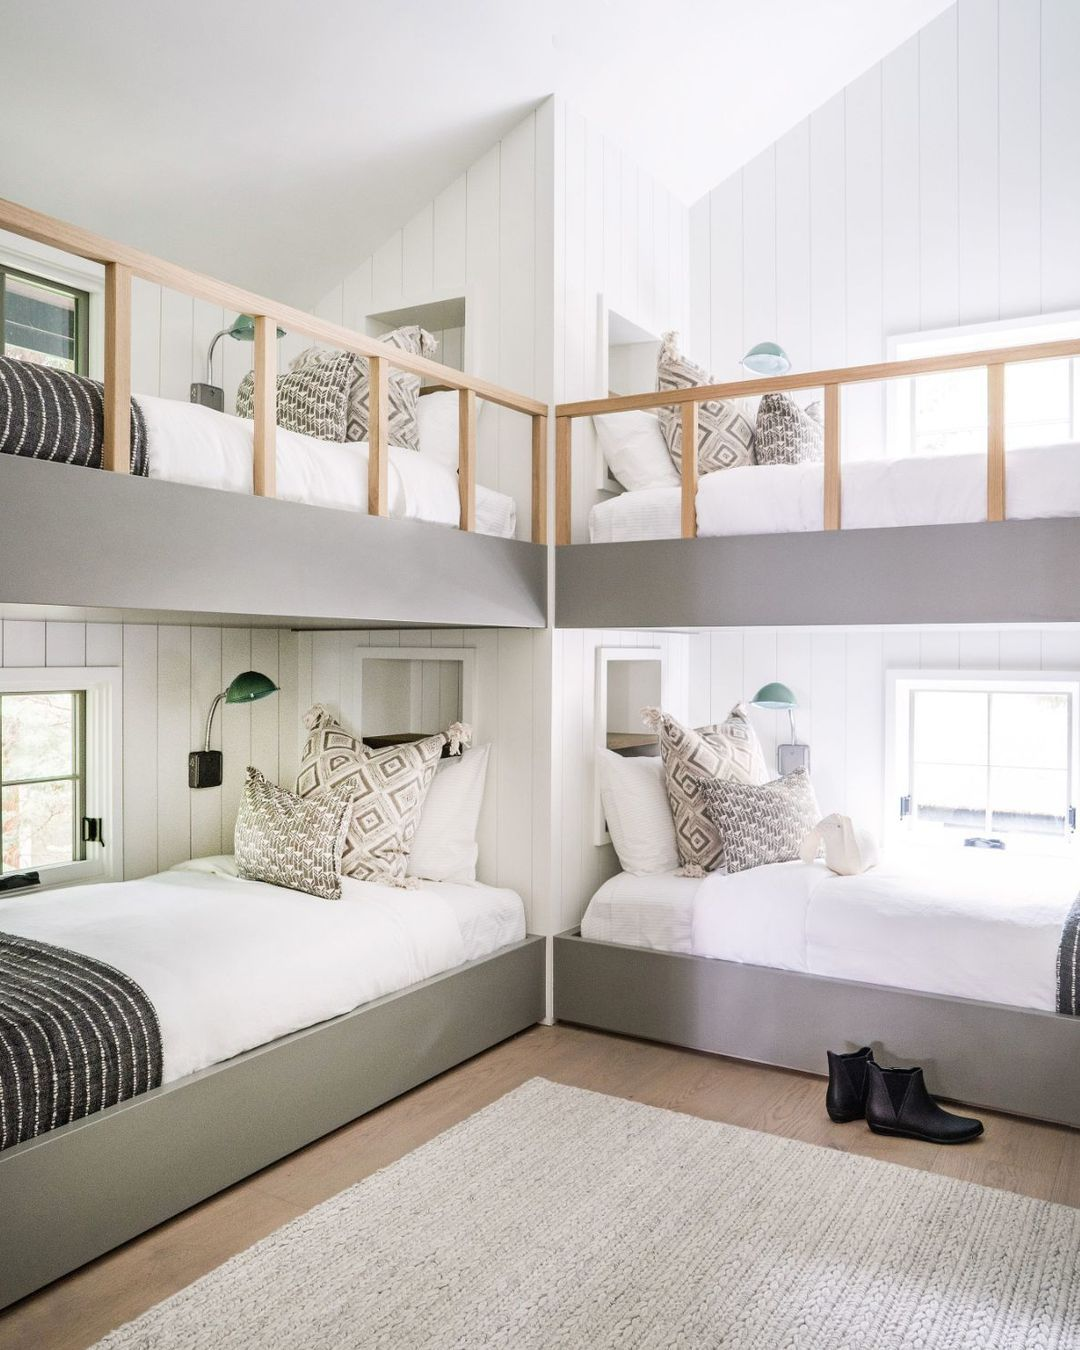 20 Chic Bunk Bed Ideas To Help Maximize Your Space